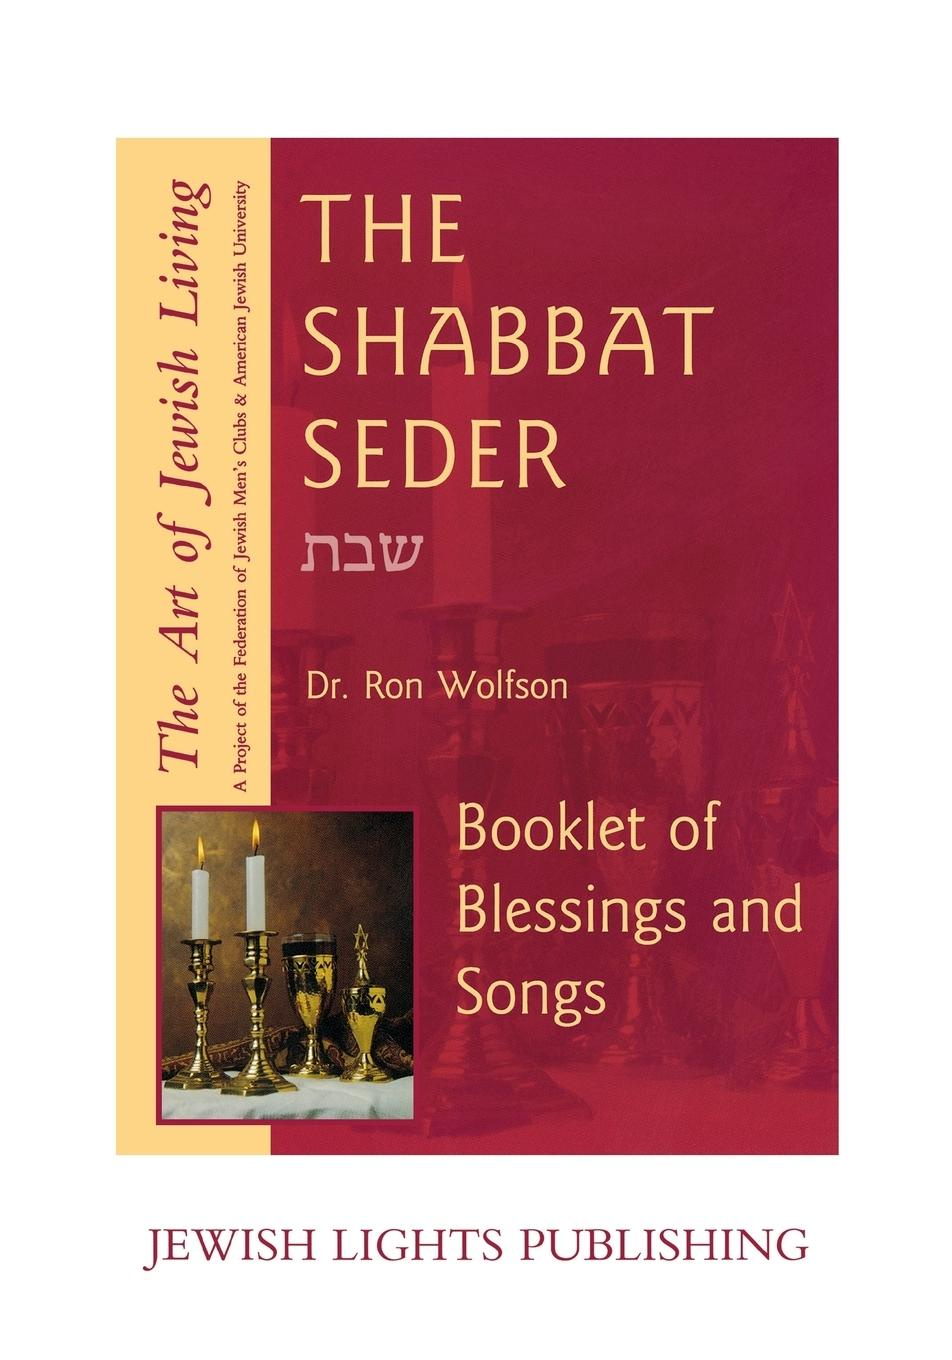 Dr. Ron Wolfson Shabbat Seder. Booklet of Blessings and Songs evelyn underhill the complete christian mystic a practical step by step guide for awakening to the presence of god